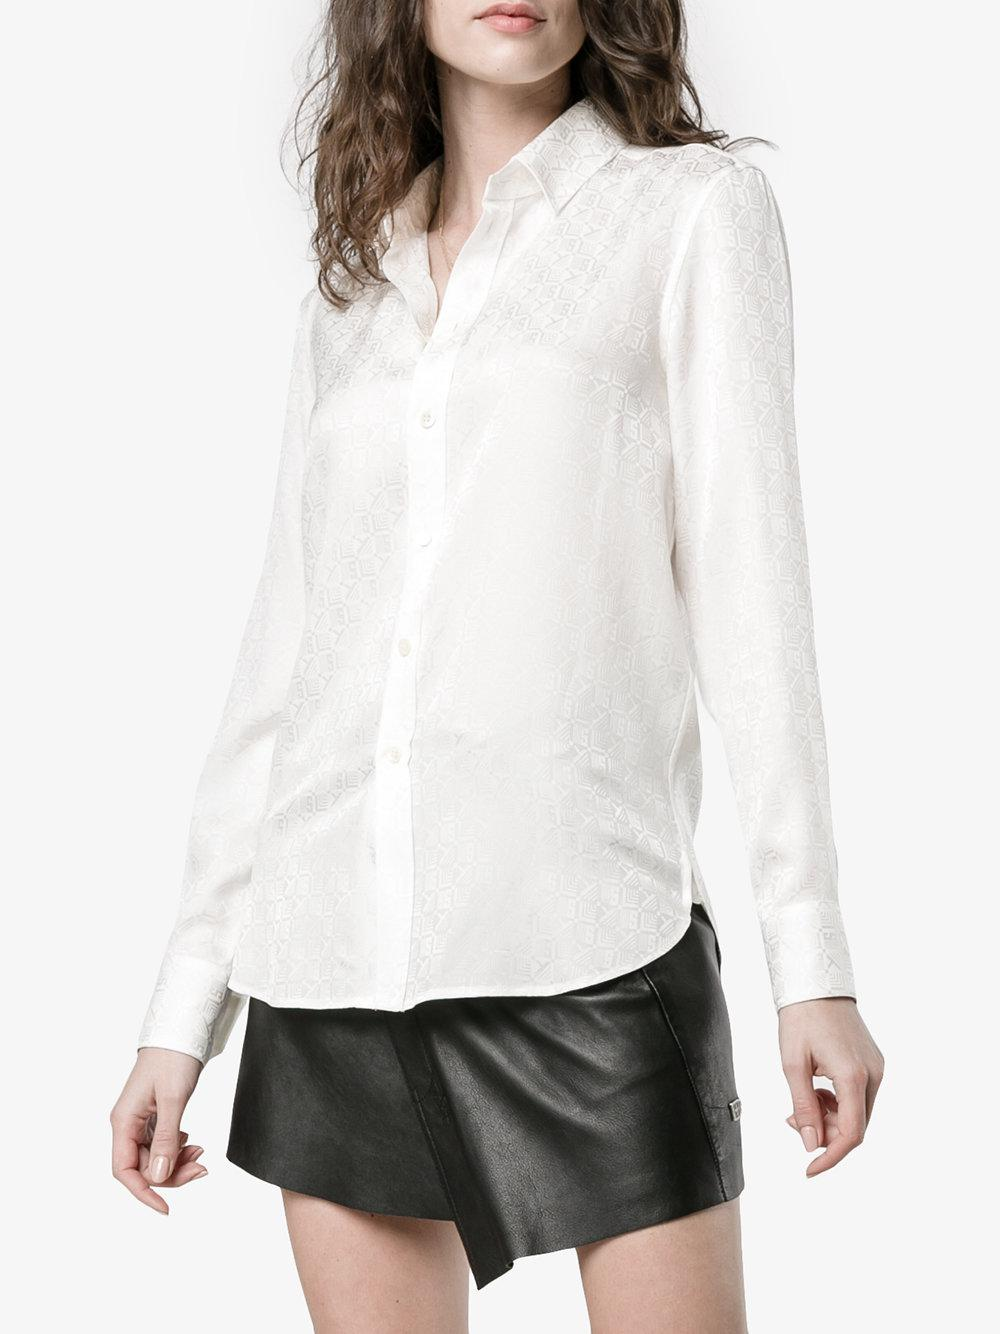 Best Prices Sale Online 2018 Monogrammed Silk Button Down Shirt - Nude & Neutrals Saint Laurent Store Sale Amazing Price For Sale f2208a